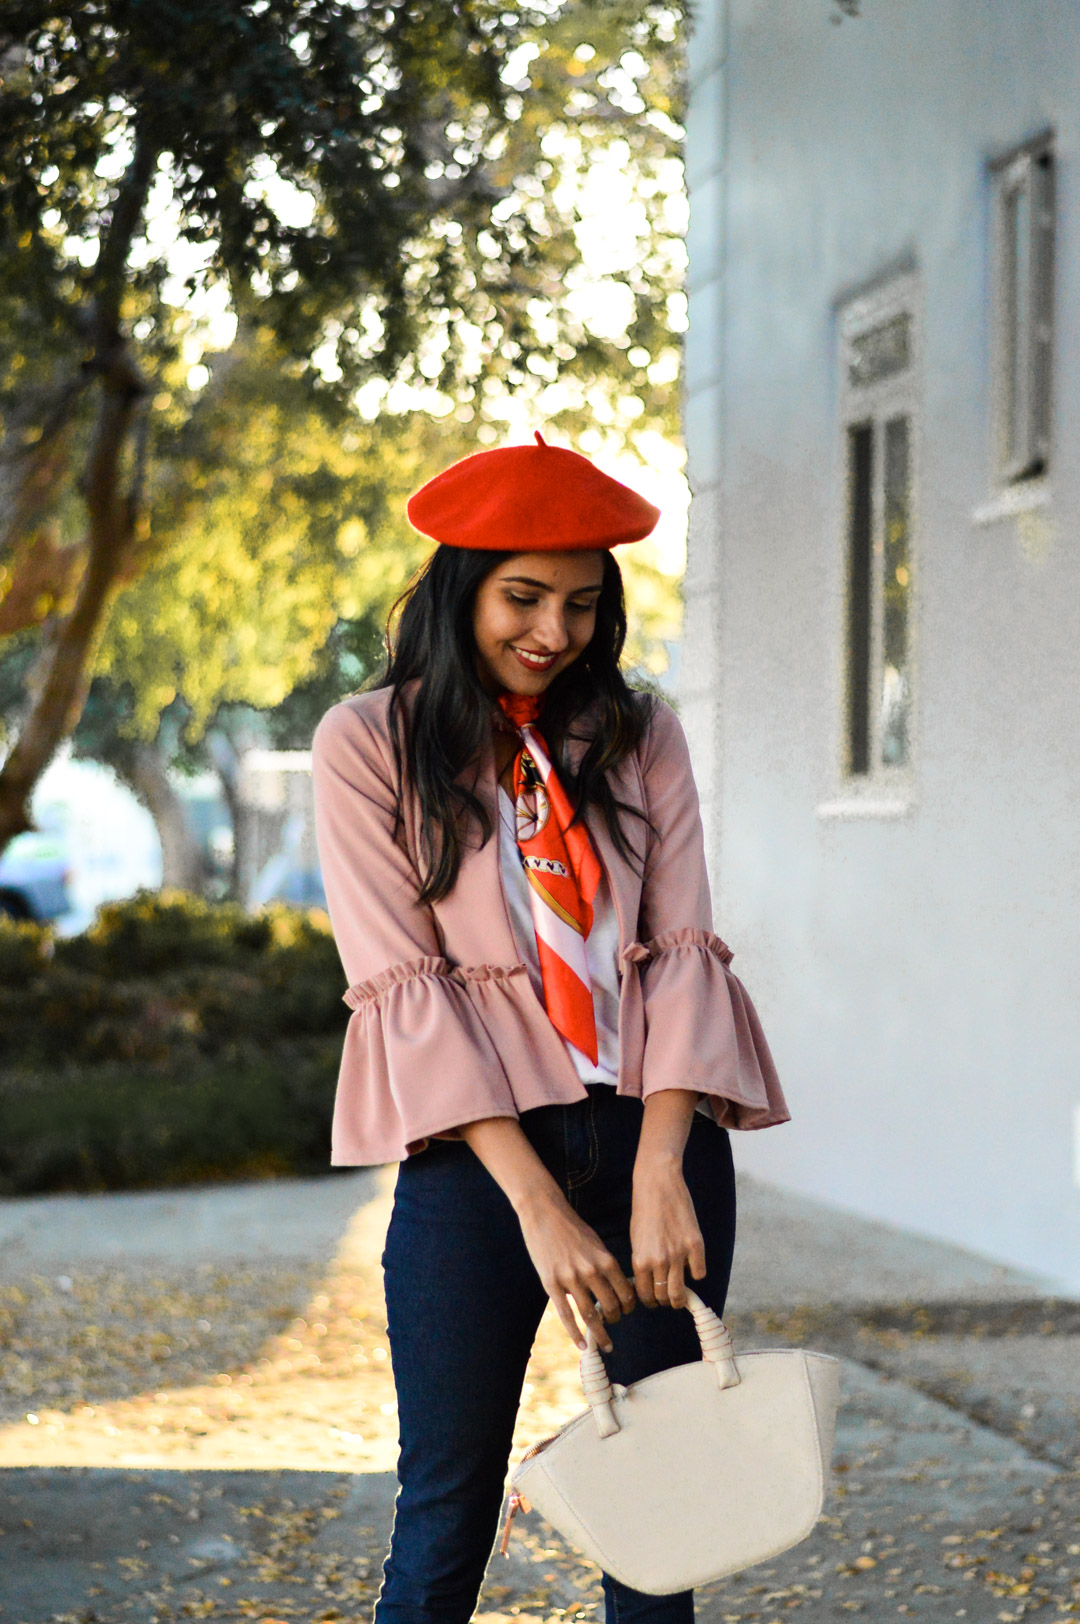 french-vibes-beret-ruffles-blogger-style 2